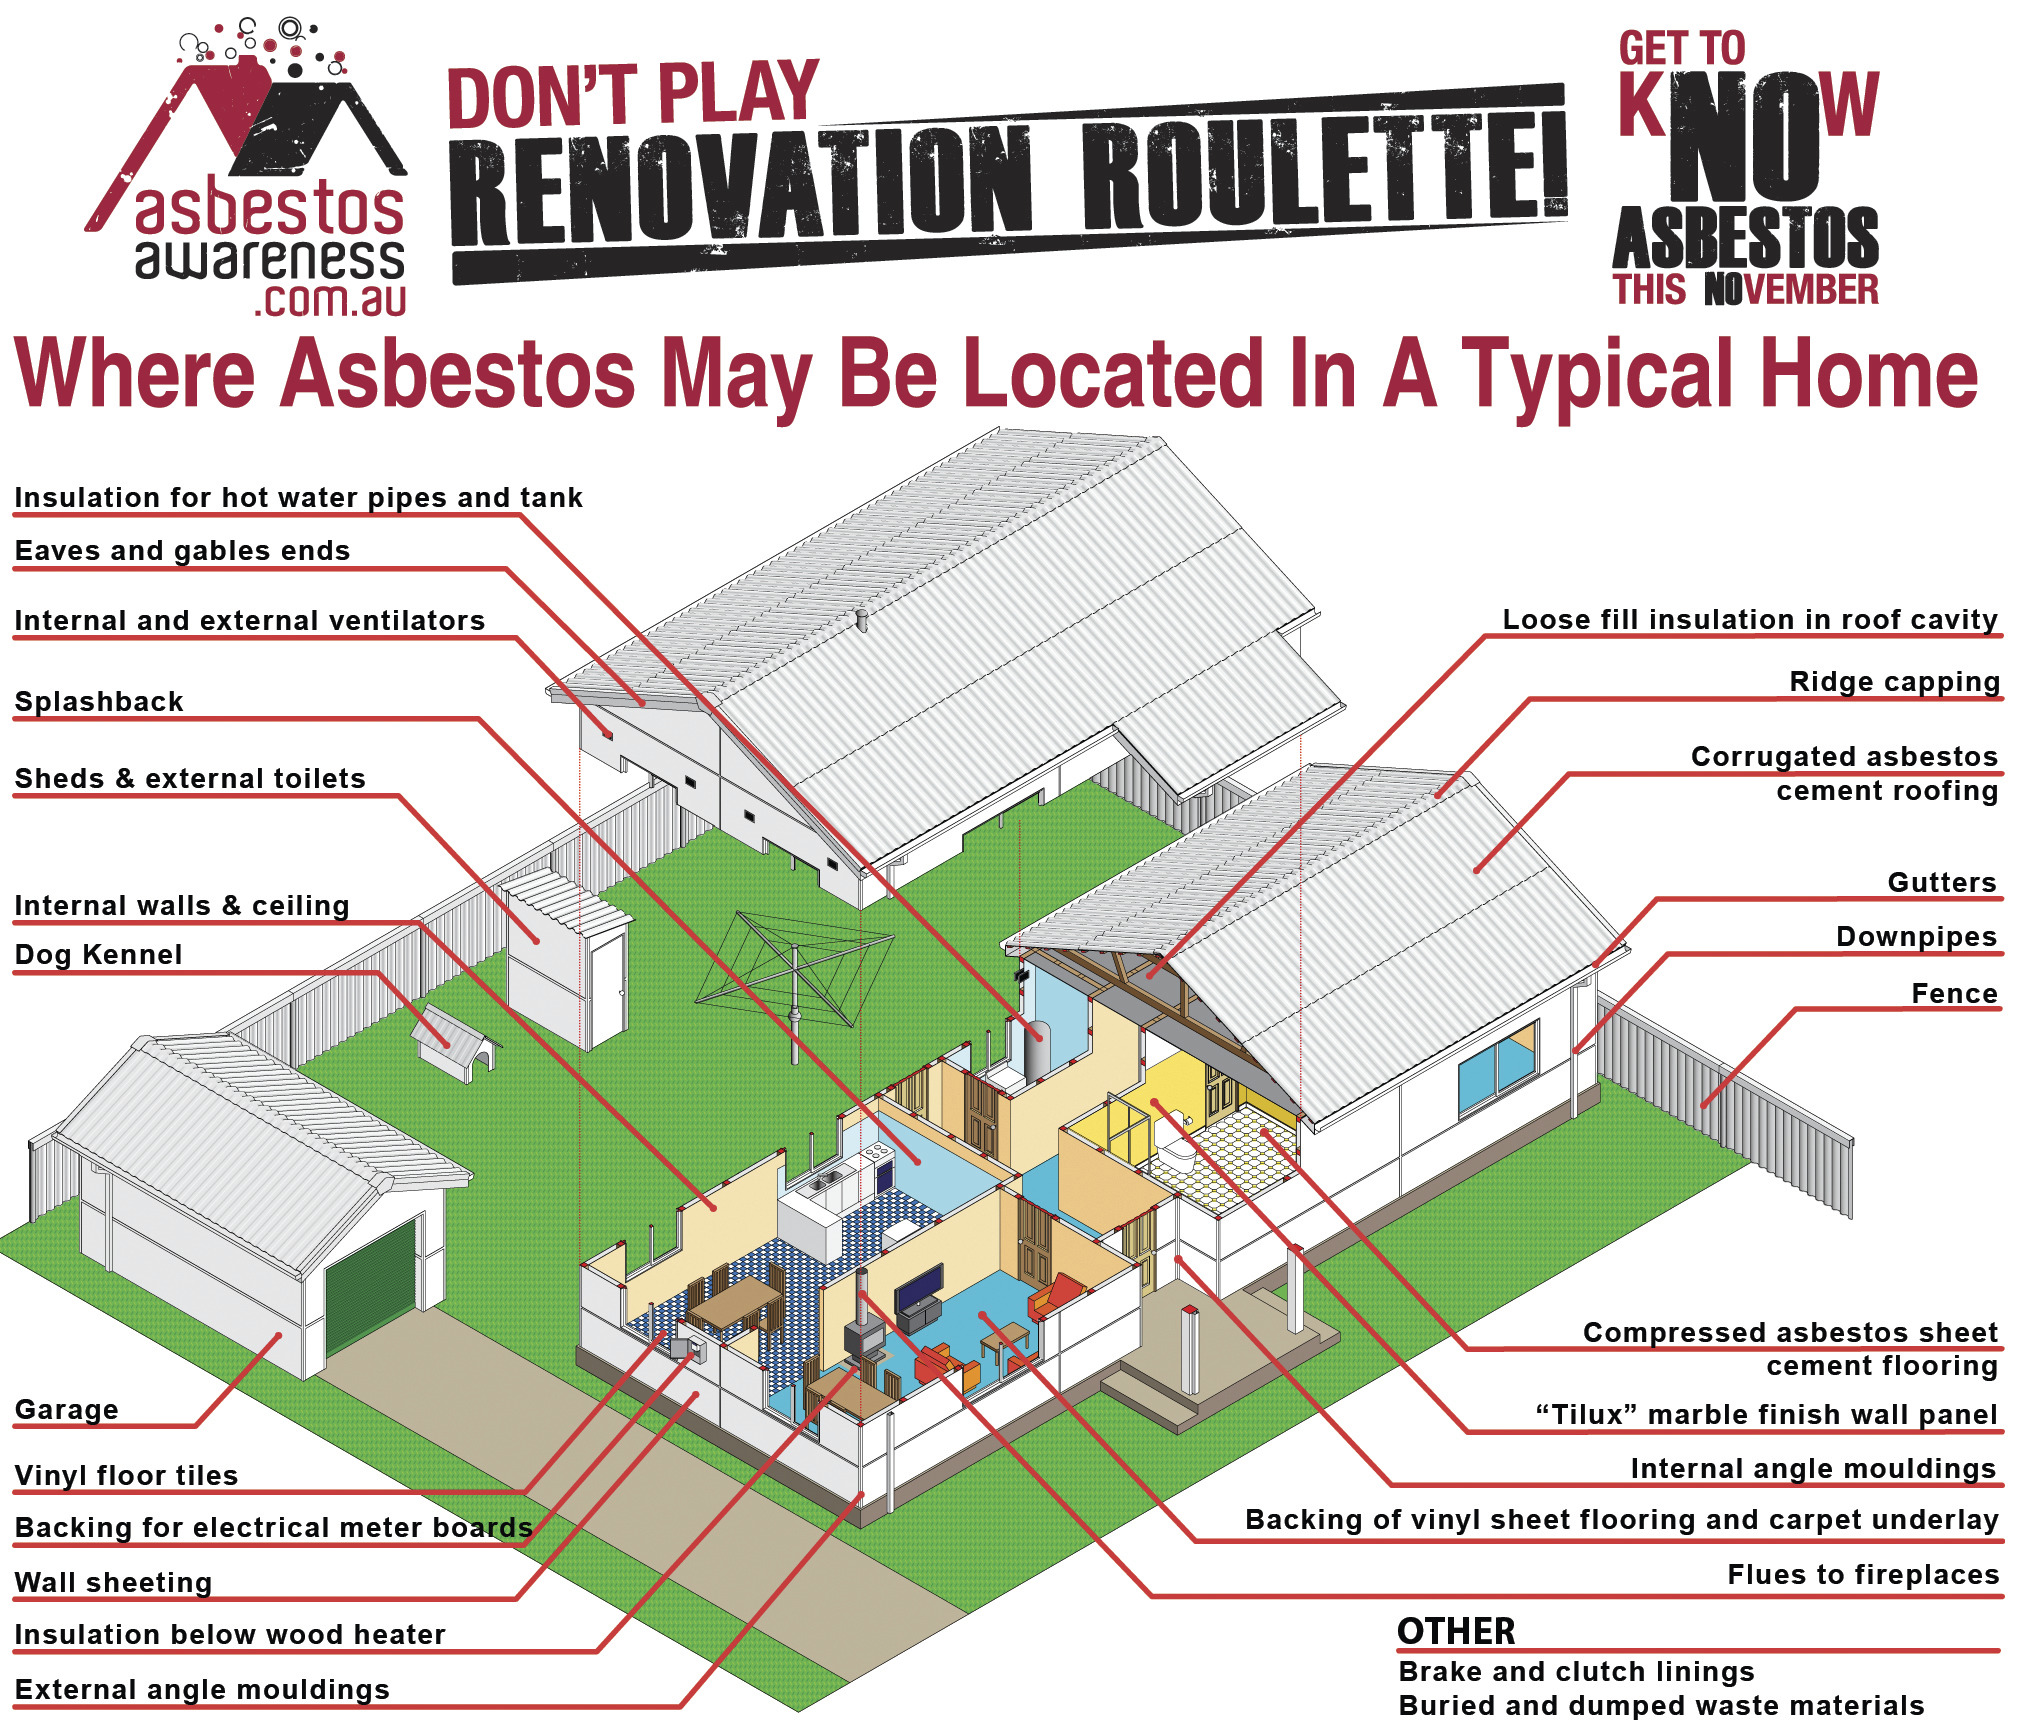 Asbestos Locations Around The Home